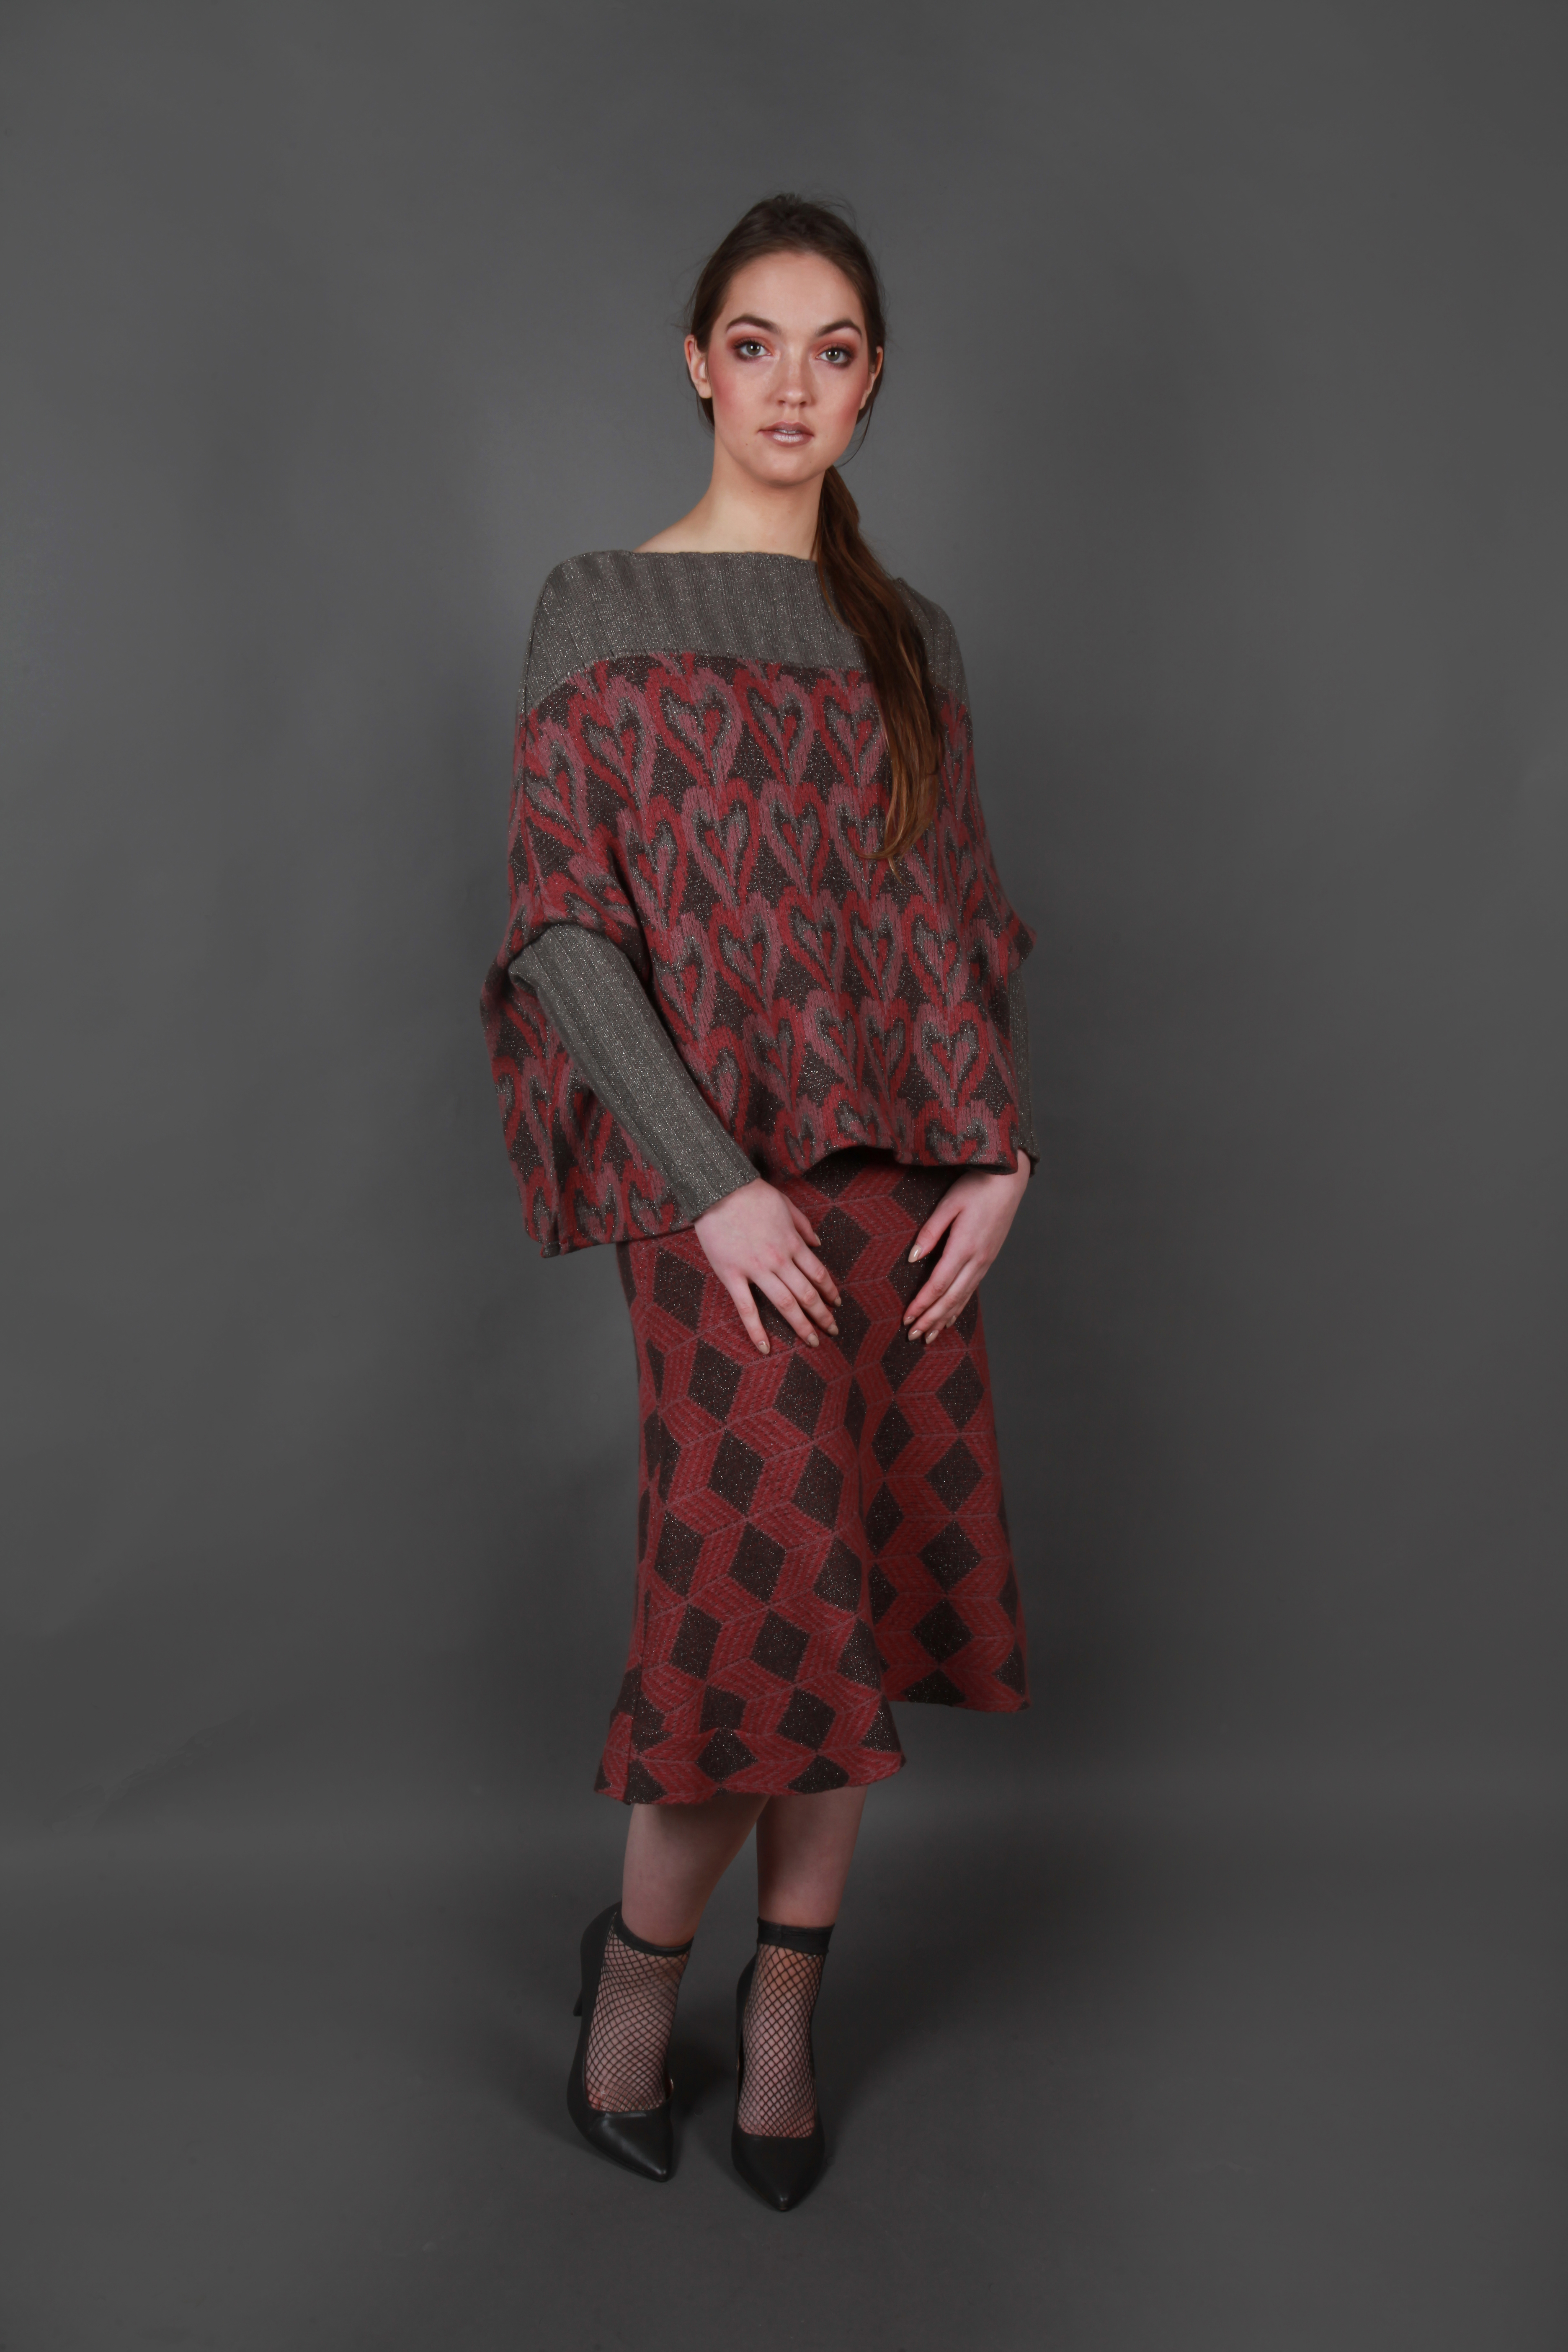 Cubed pattern A-Line skirt